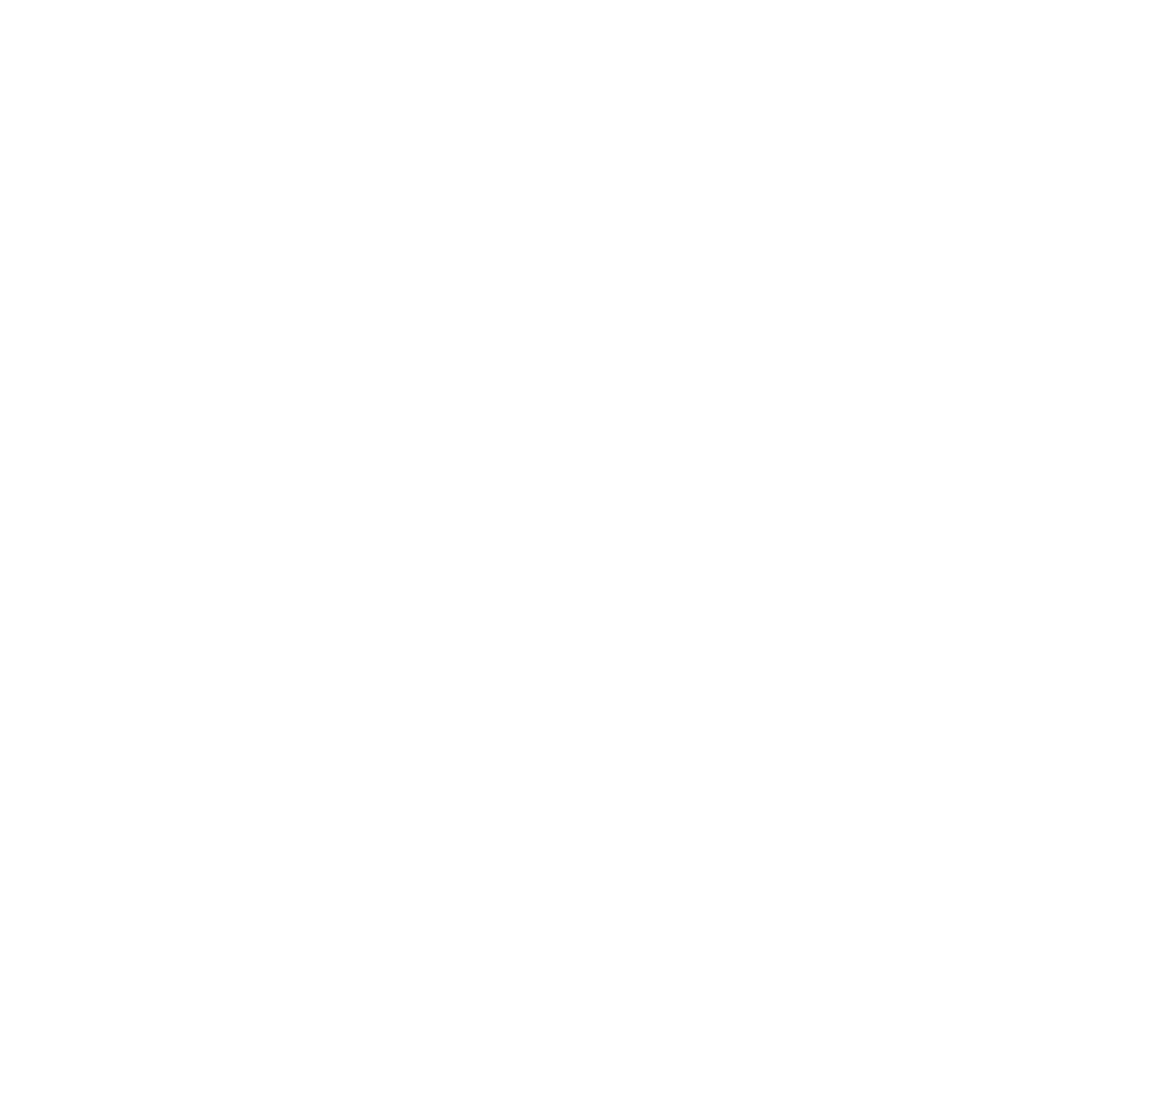 SPACE CADE7S